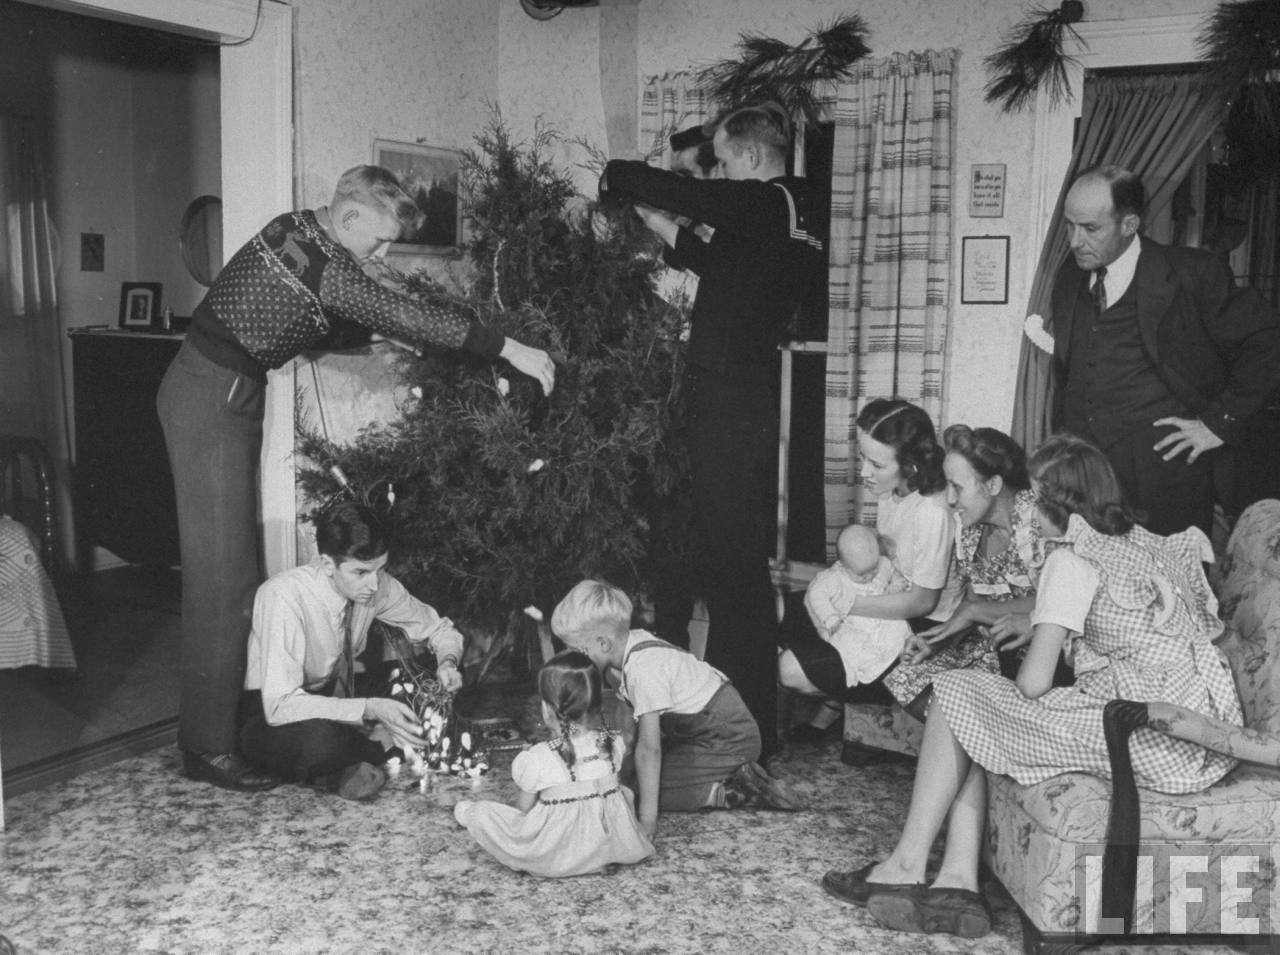 Members of farmer James Ferdinand Irwins family trimming native cedar Christmas tree in living room during family reunion and early Christmas celebration marking the return of Irwins sons and sons-in-law fr. service in WWII.© Time Inc. Myron Davis